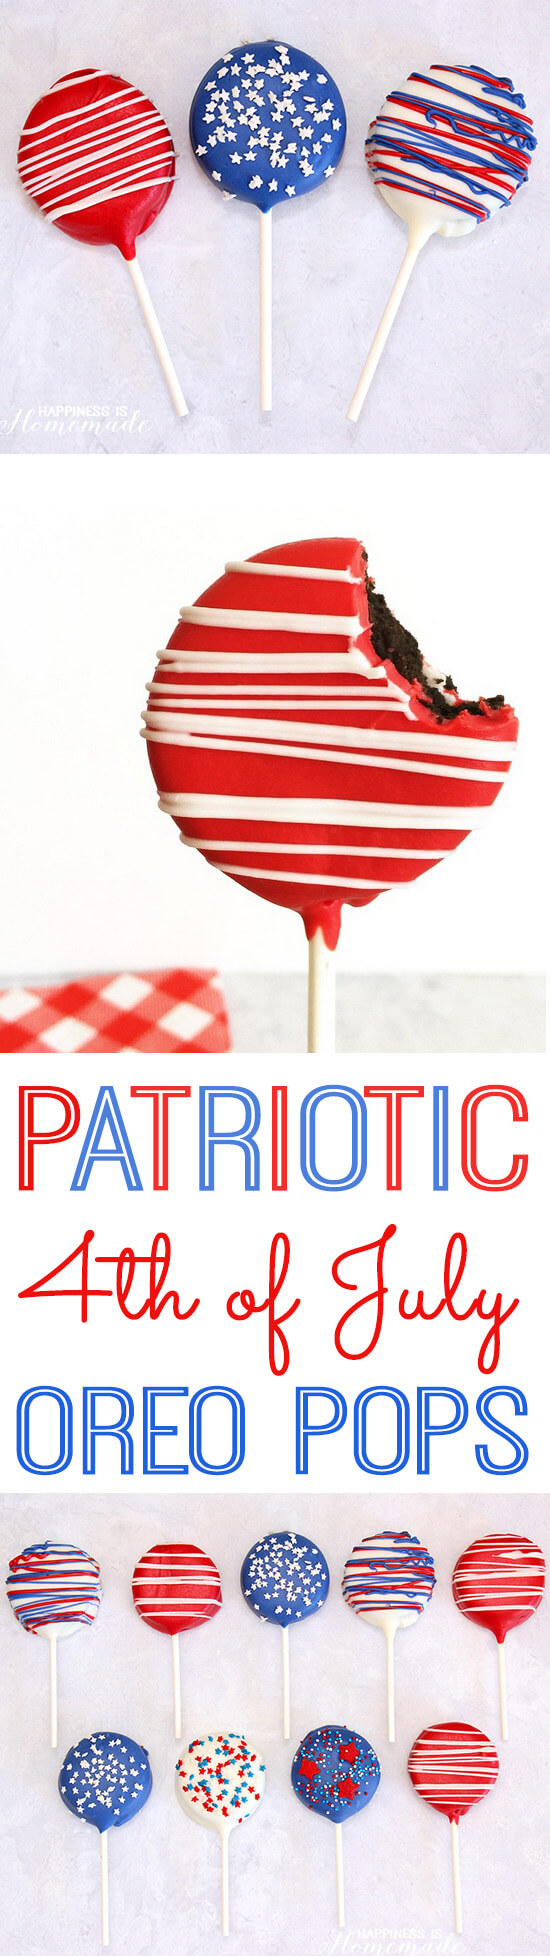 How to Make Patriotic Oreo Pops for 4th of July